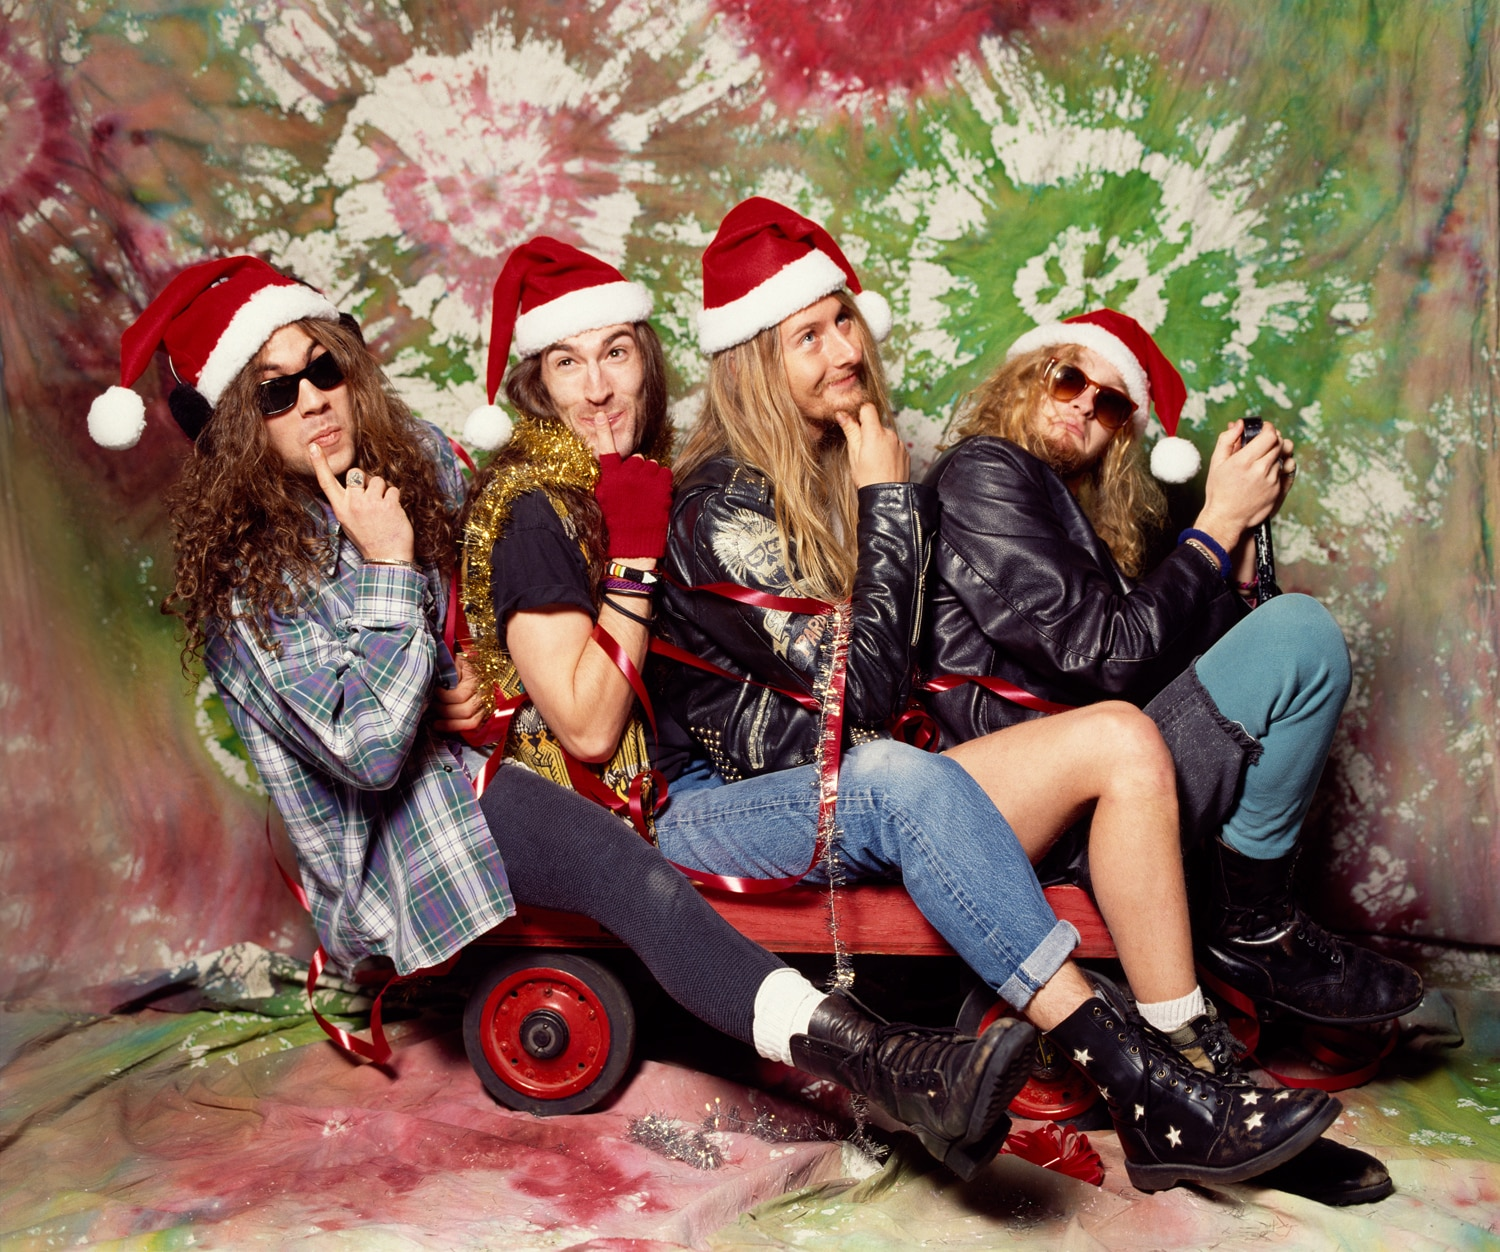 Members of Alice in Chains got into the holiday spirit in a photo shoot with Karen Mason Blair.